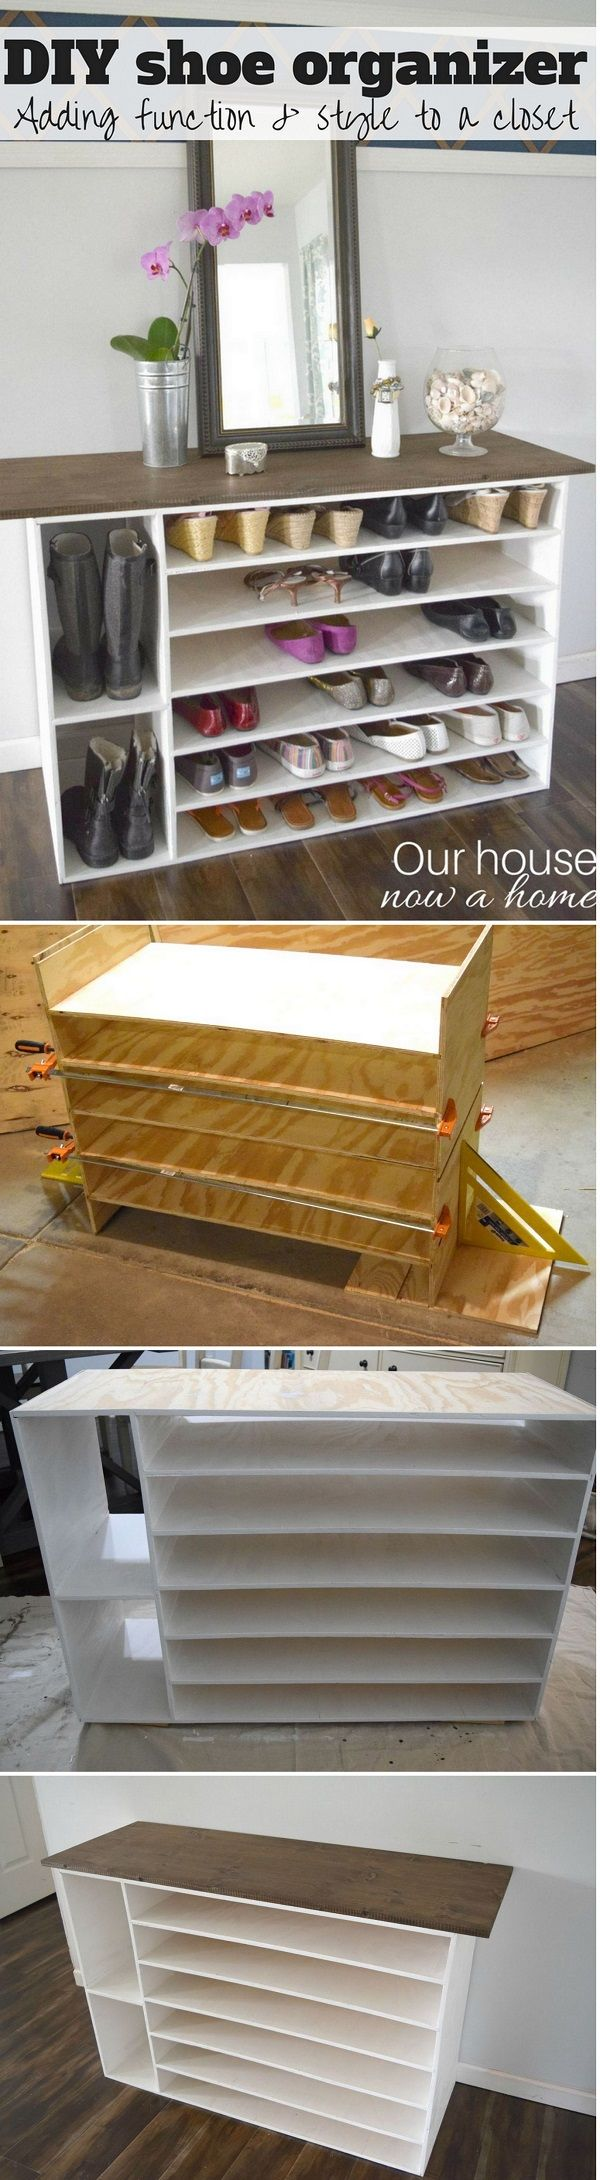 Check out how to build your own DIY shoe storage organizer @istandarddesign